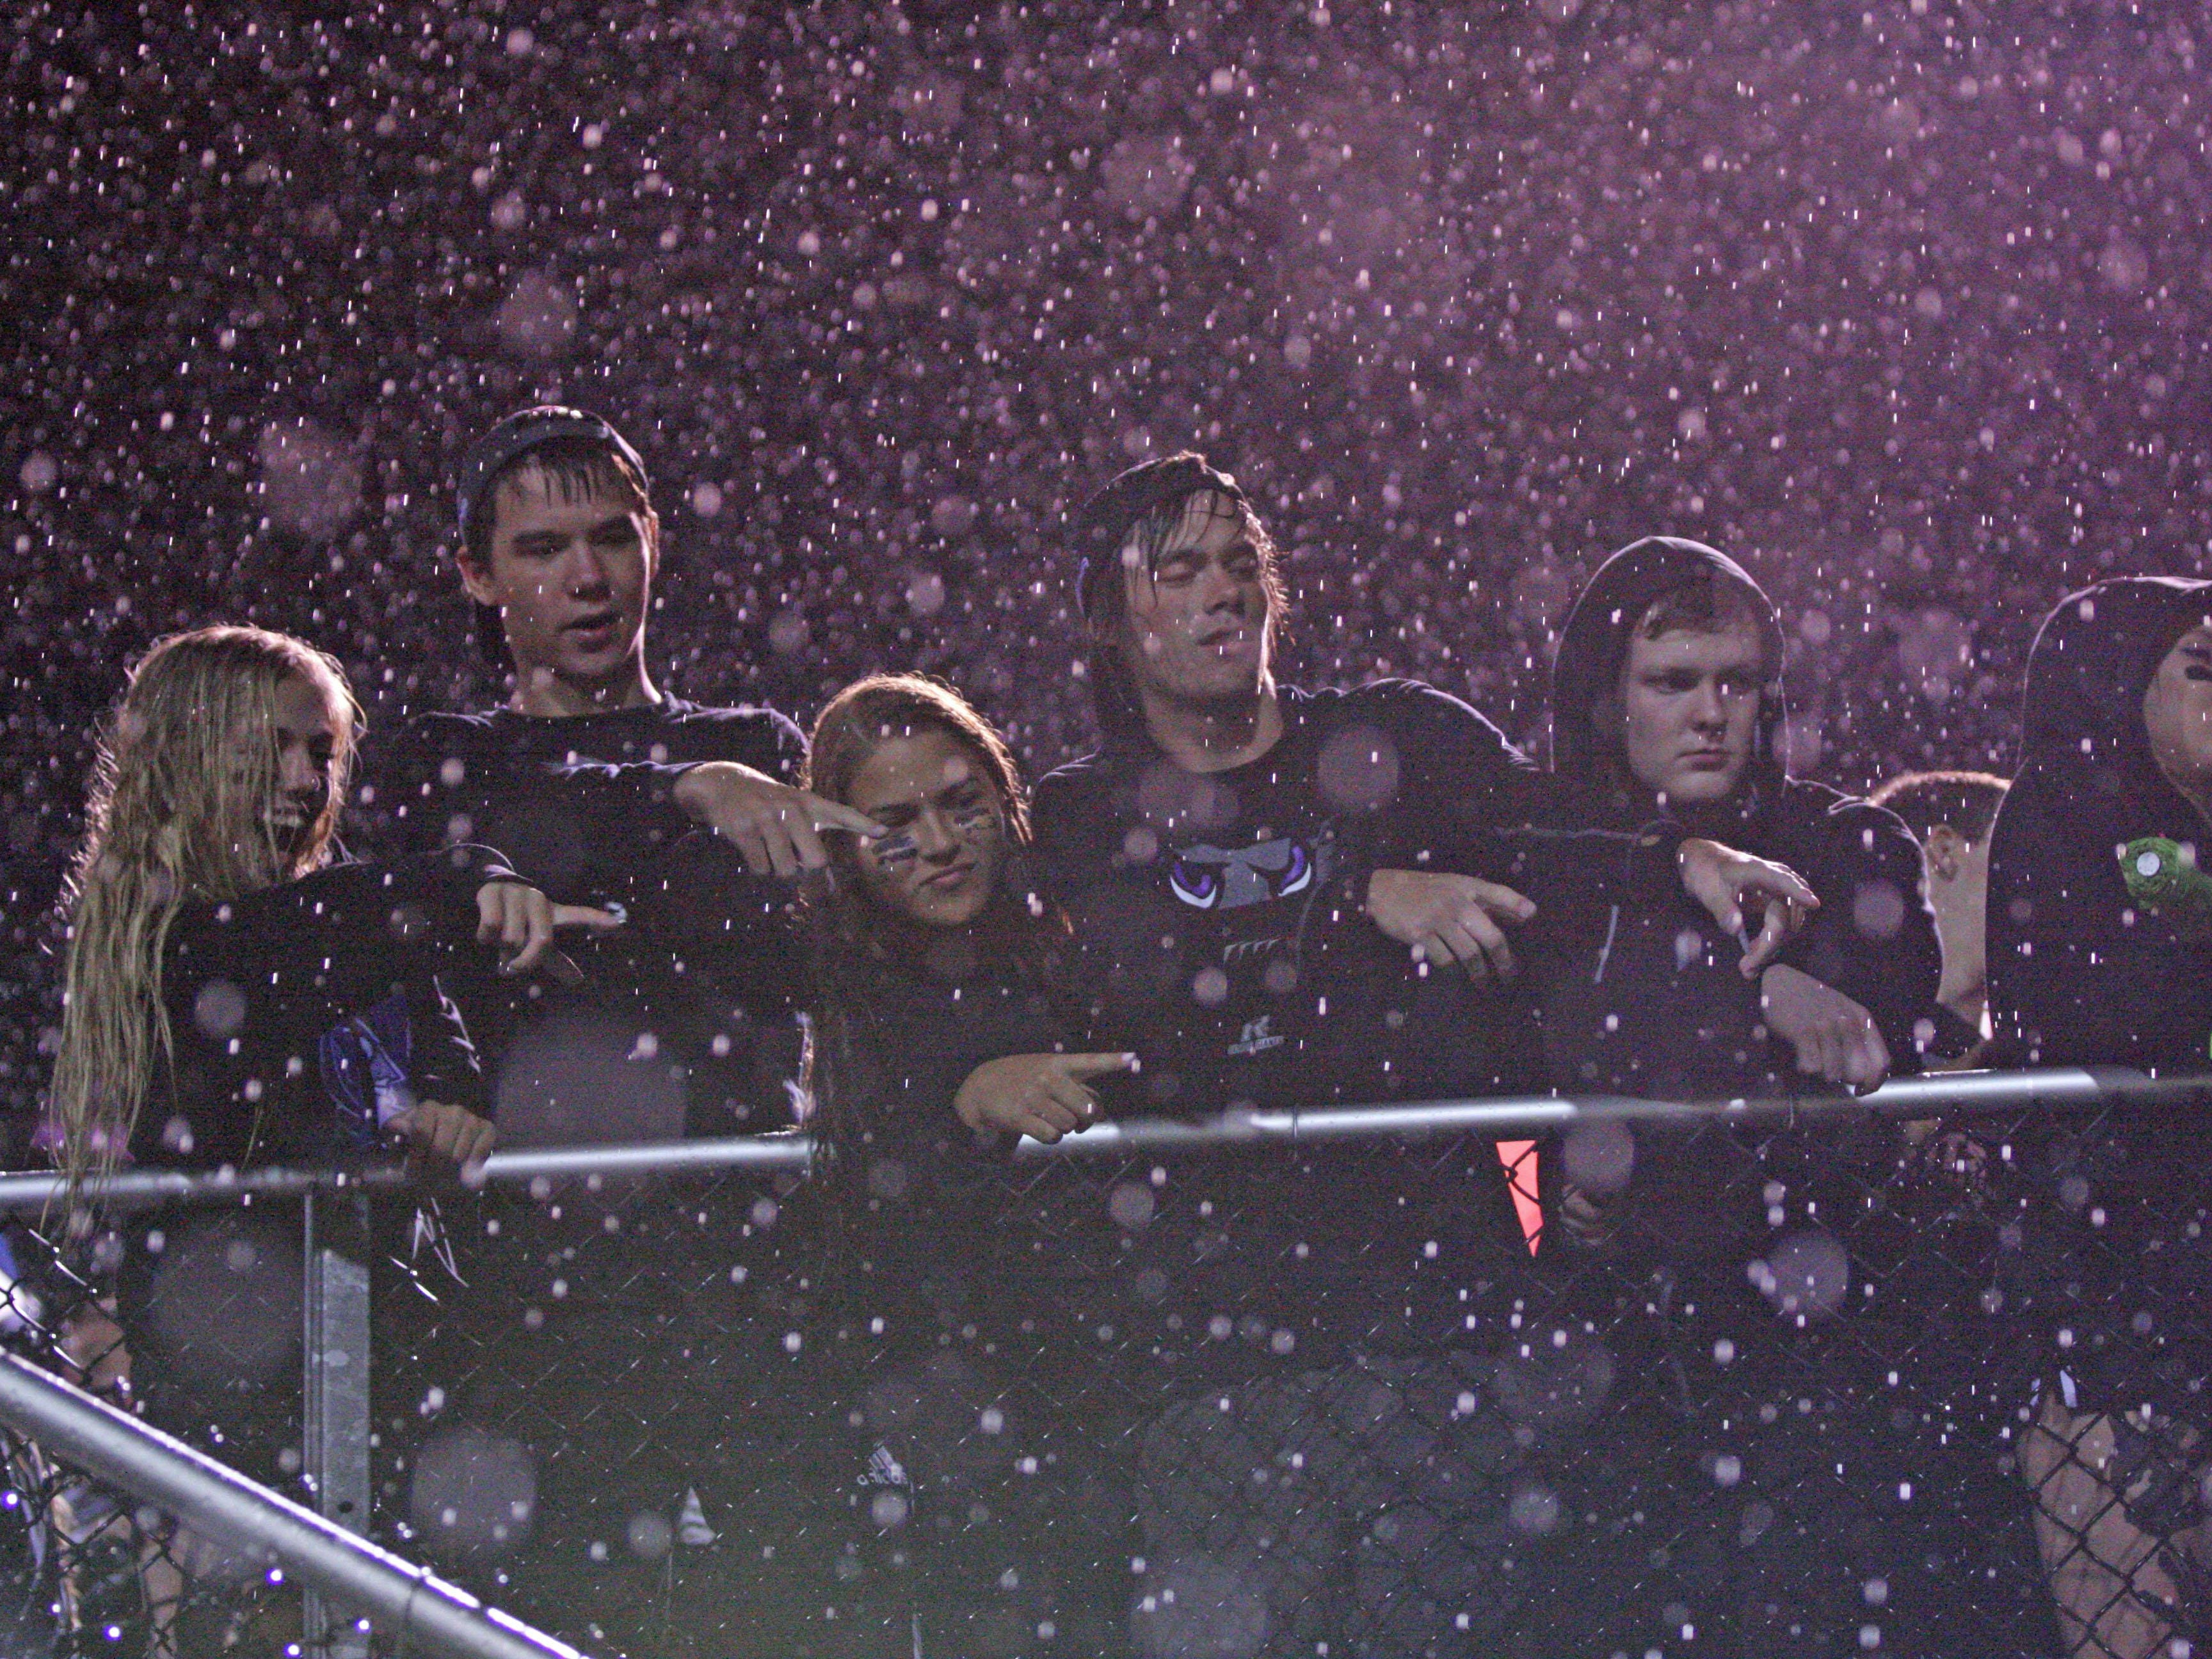 Fans braved the elements and watched the Little Giants defeat Sandusky 34-7.